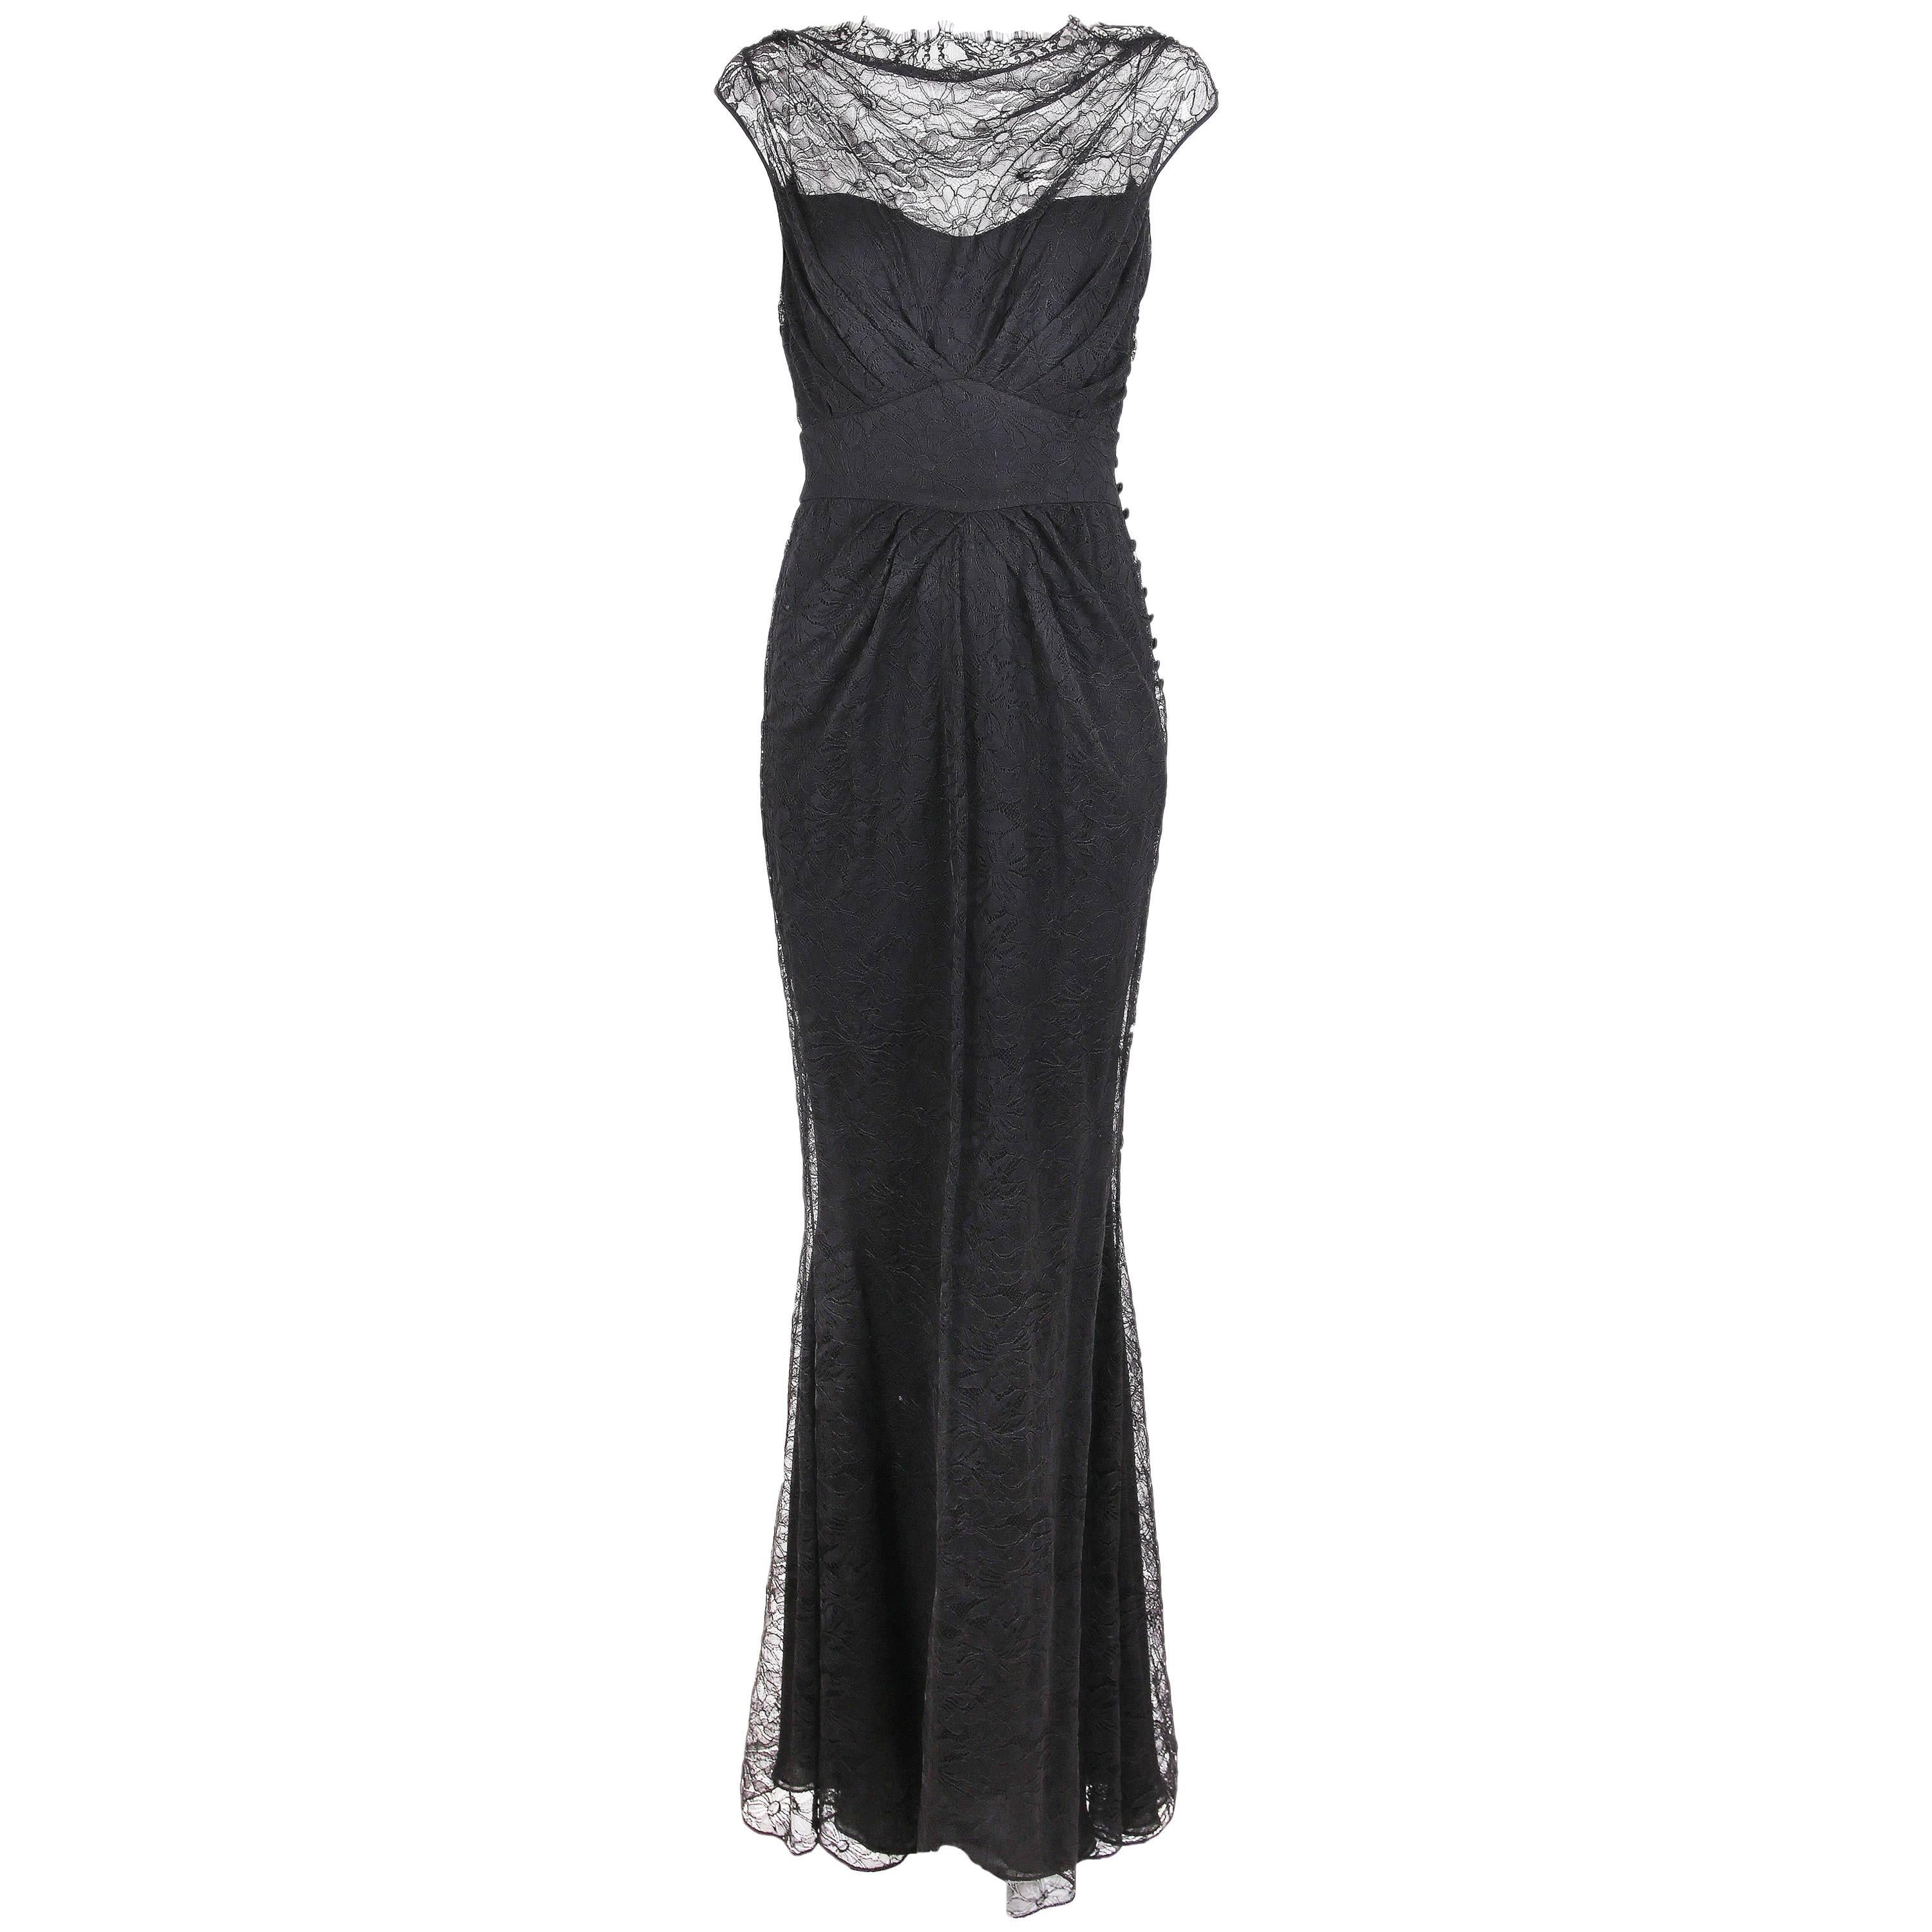 John Galliano Black Lace Cowl Neck Gown with Mermaid Hem